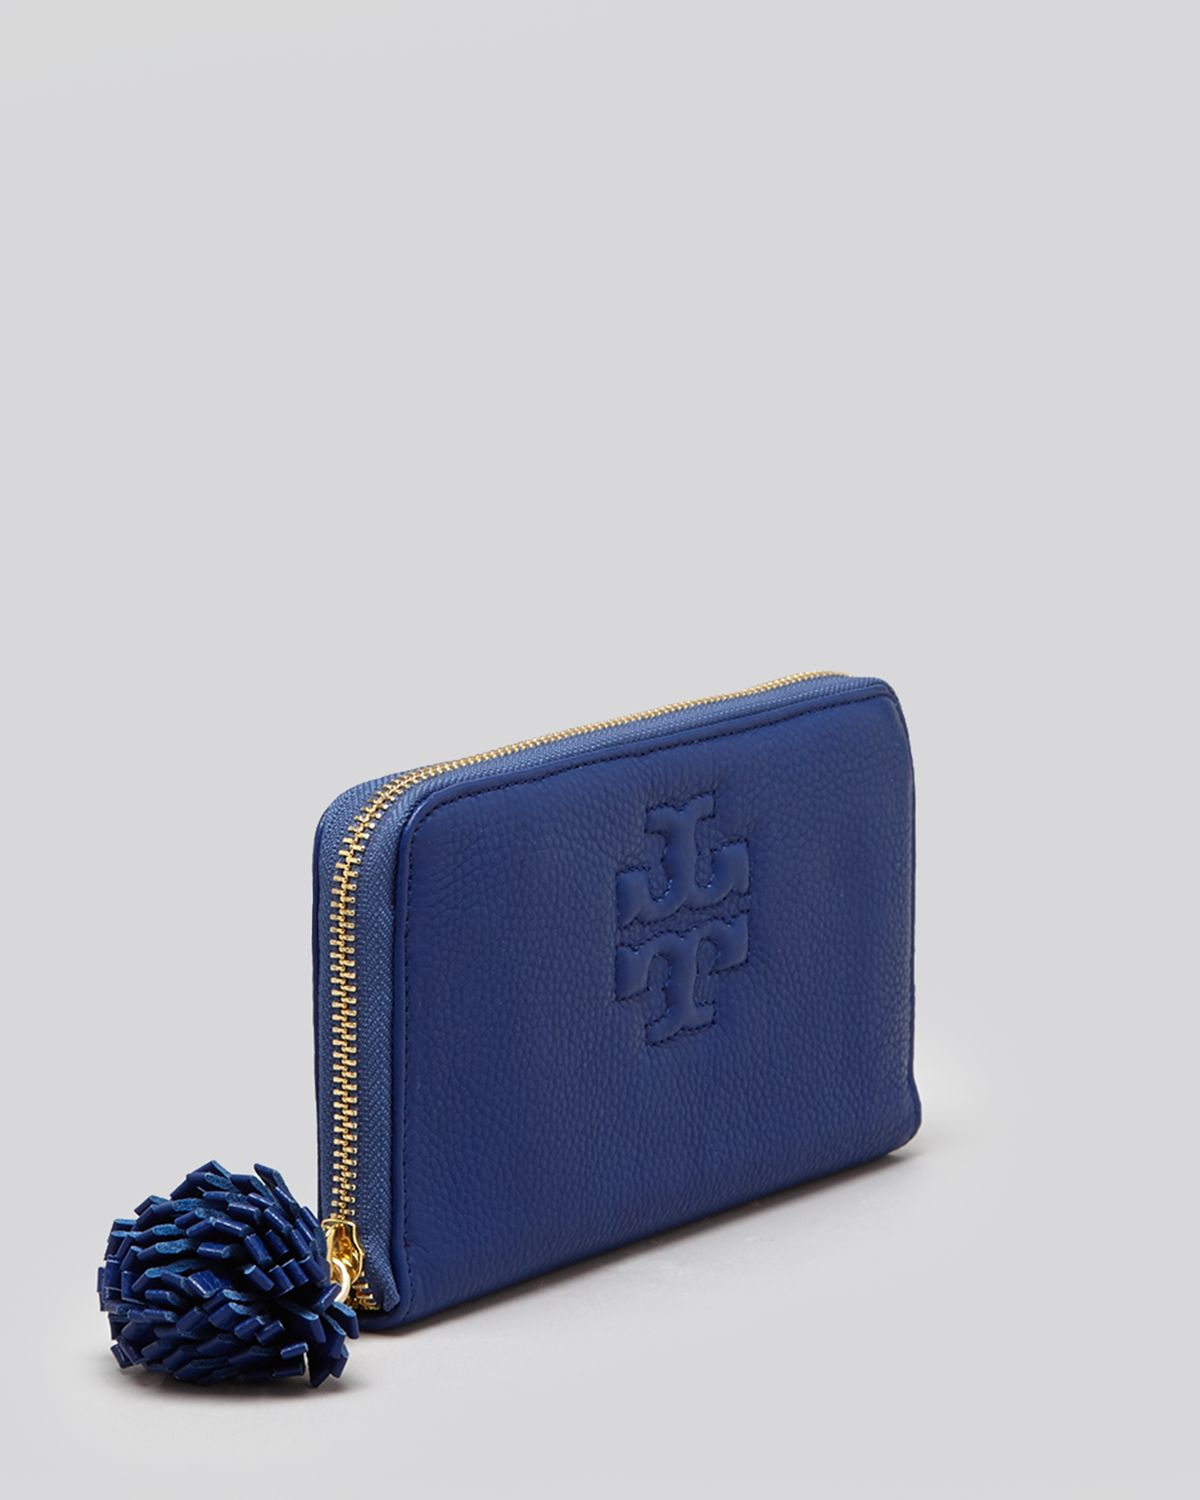 da377781e Lyst - Tory Burch Wallet Thea Zip Continental with Pom Pom in Pink